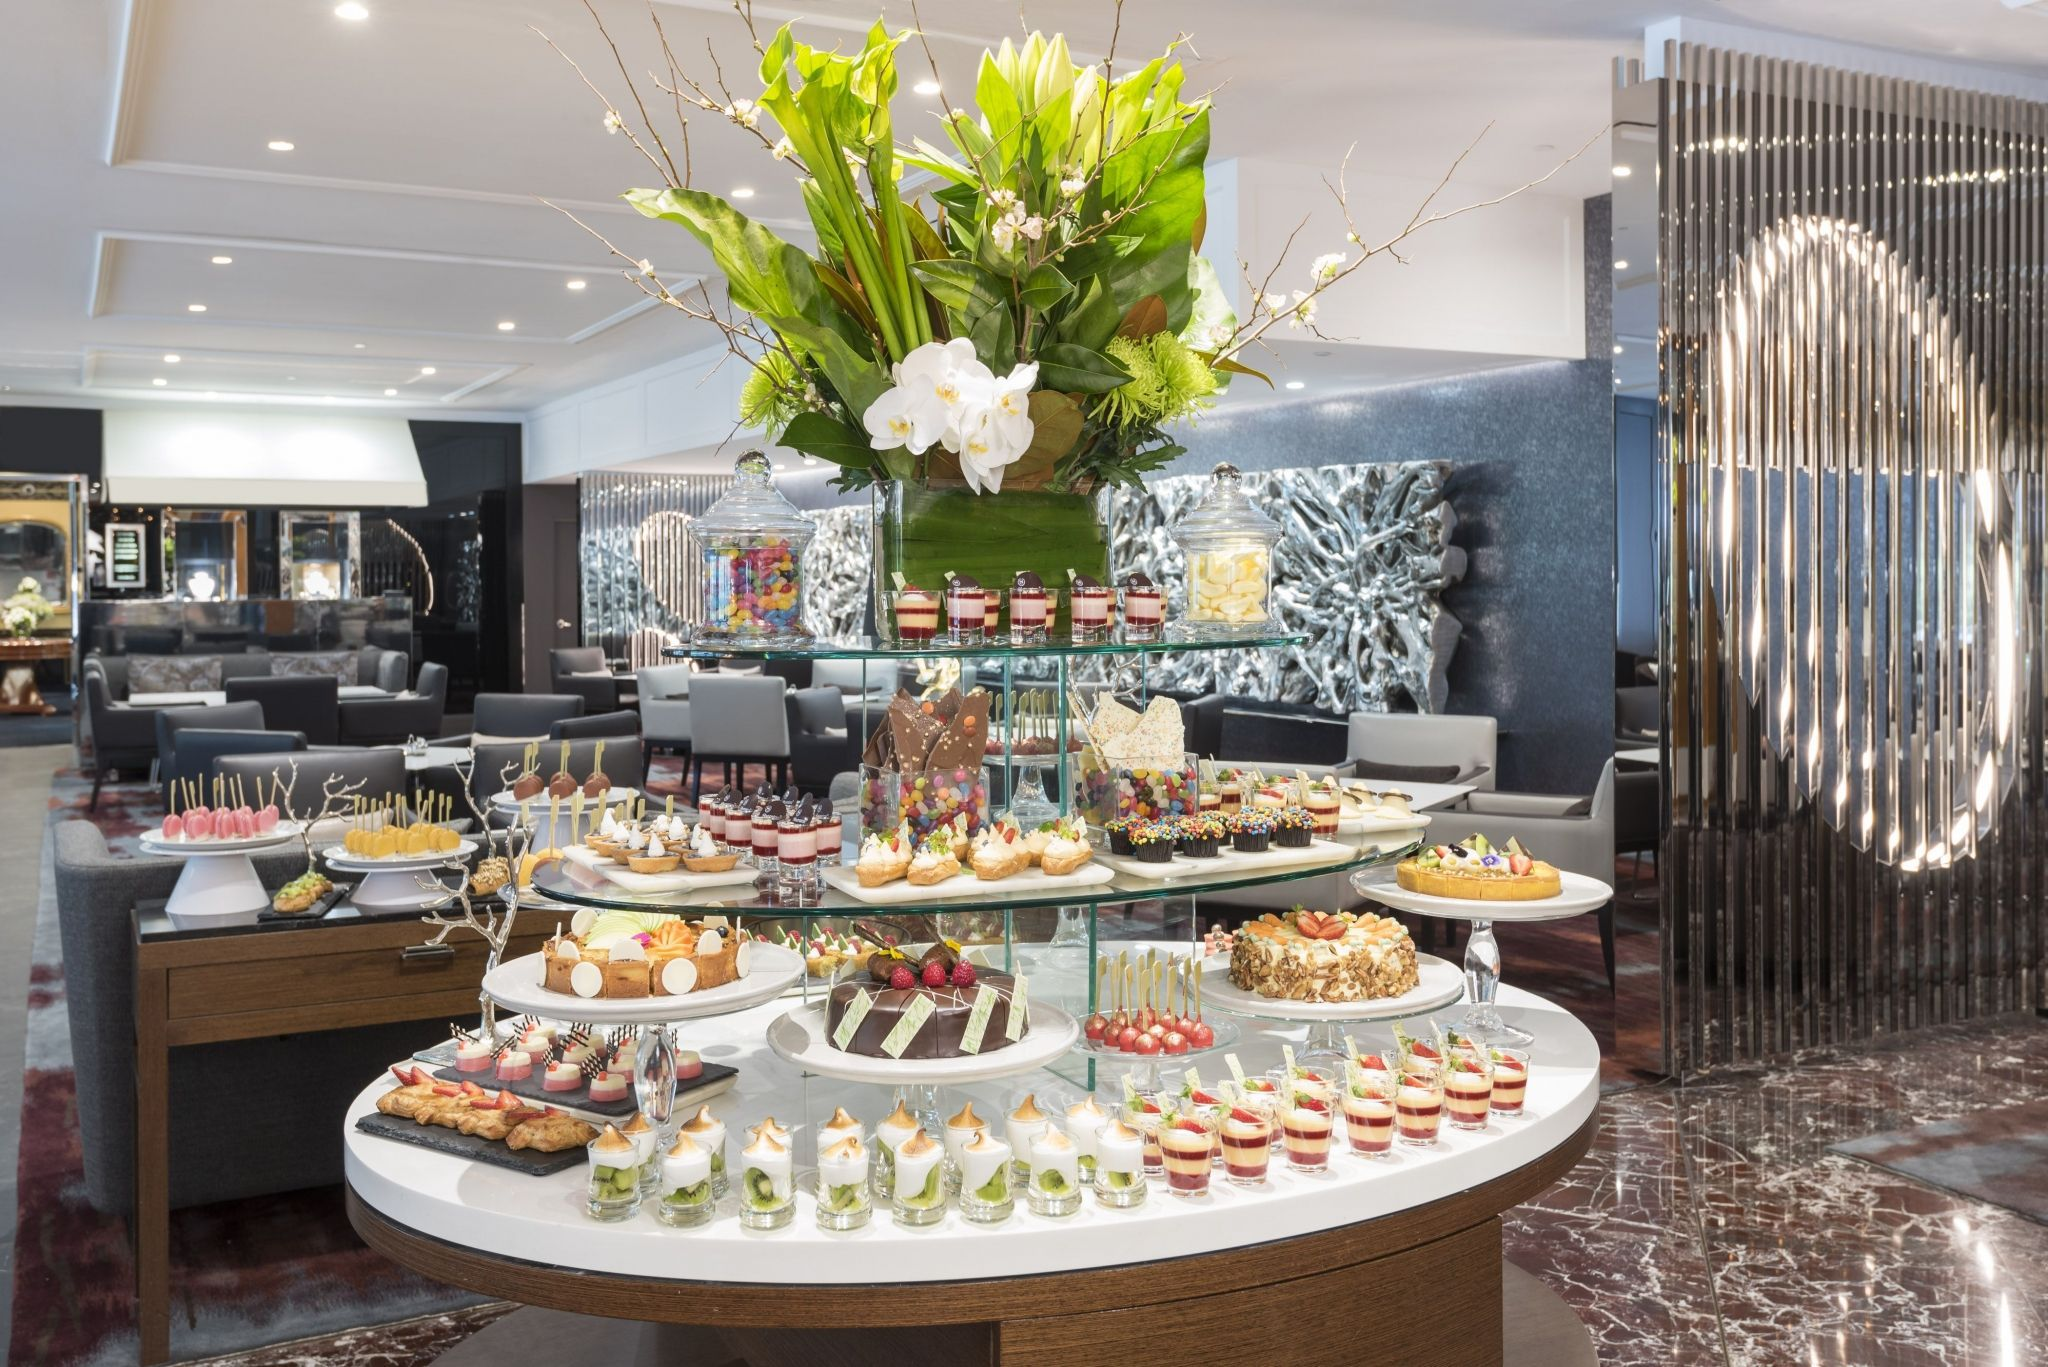 Afternoon High Tea Buffet At Sheraton Hotel On The Park